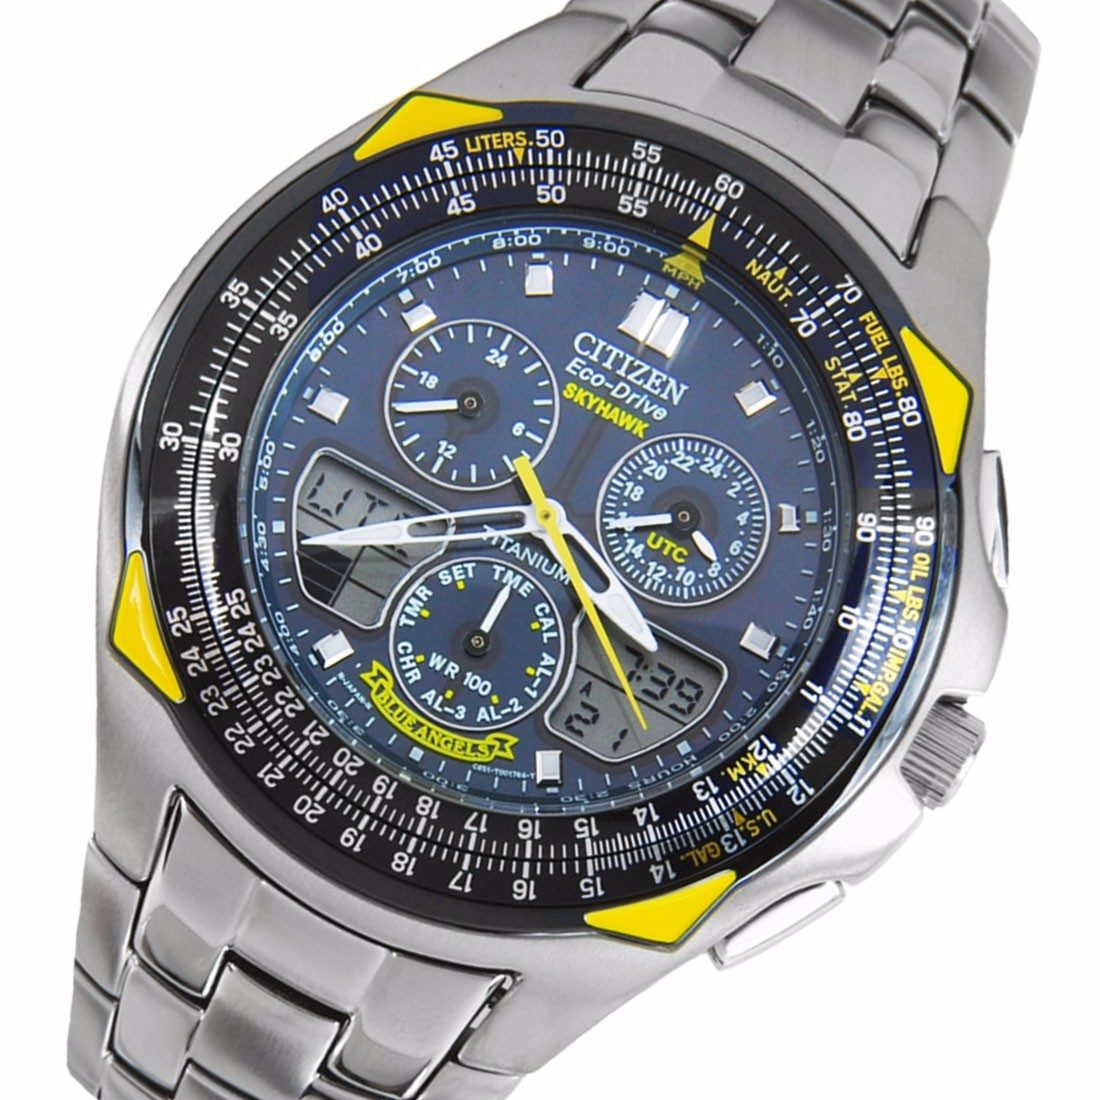 02d382cd6f2 relógio citizen eco drive skyhawk blue angels jr3090-58m. Carregando zoom.